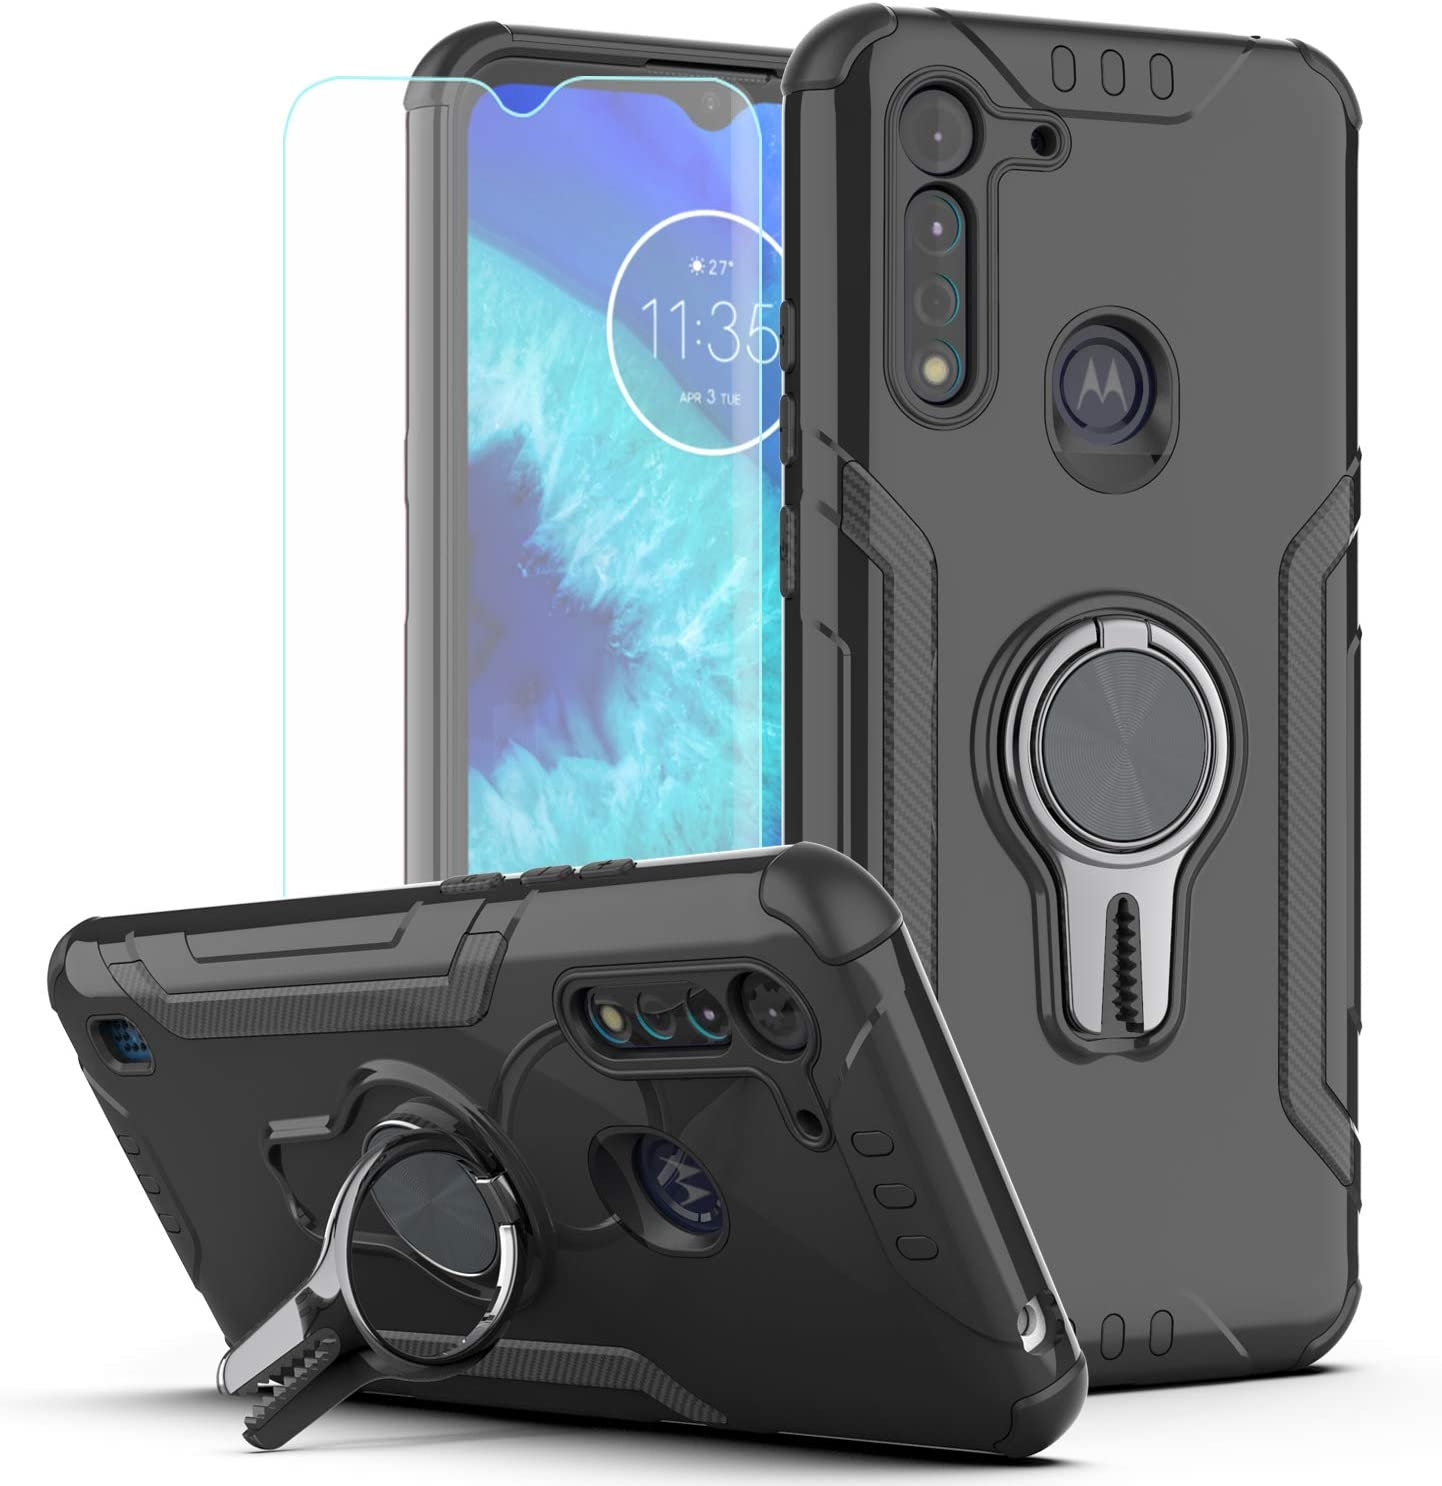 Moto G8 Power Lite Case (Not for Moto G8 Power) with HD Screen Protector,KaiMai Ring Magnetic Holder Kickstand Dual Layers of Shockproof Phone Case for Motorola Moto G8 Power Lite-LJ-Black